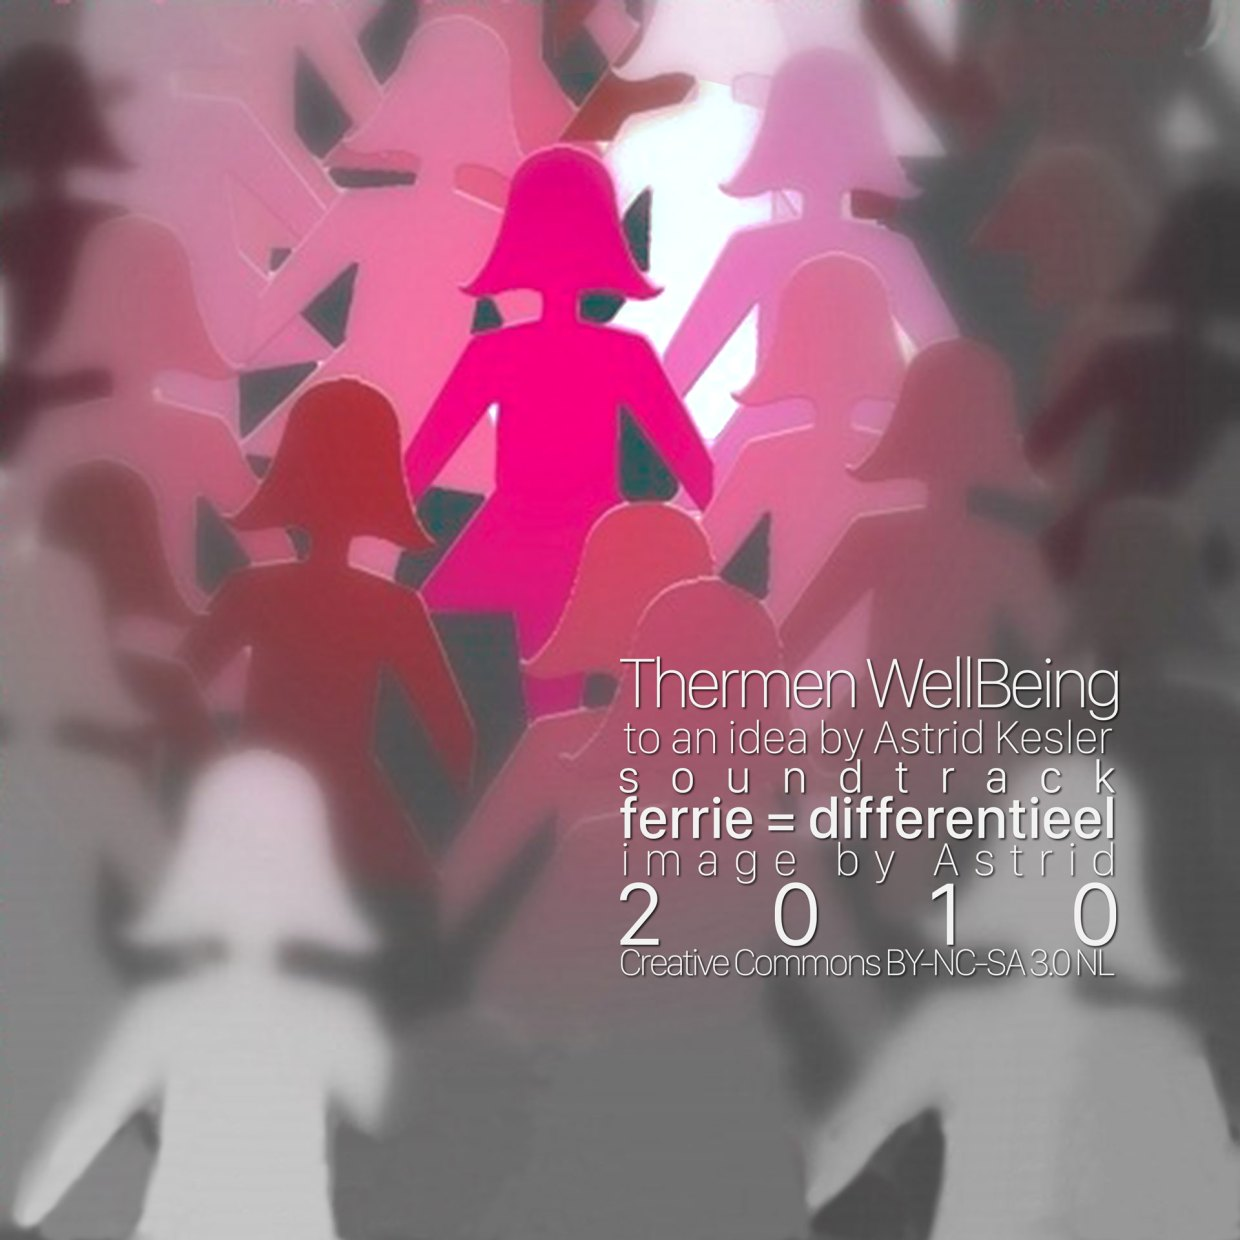 thermen wellbeing cover